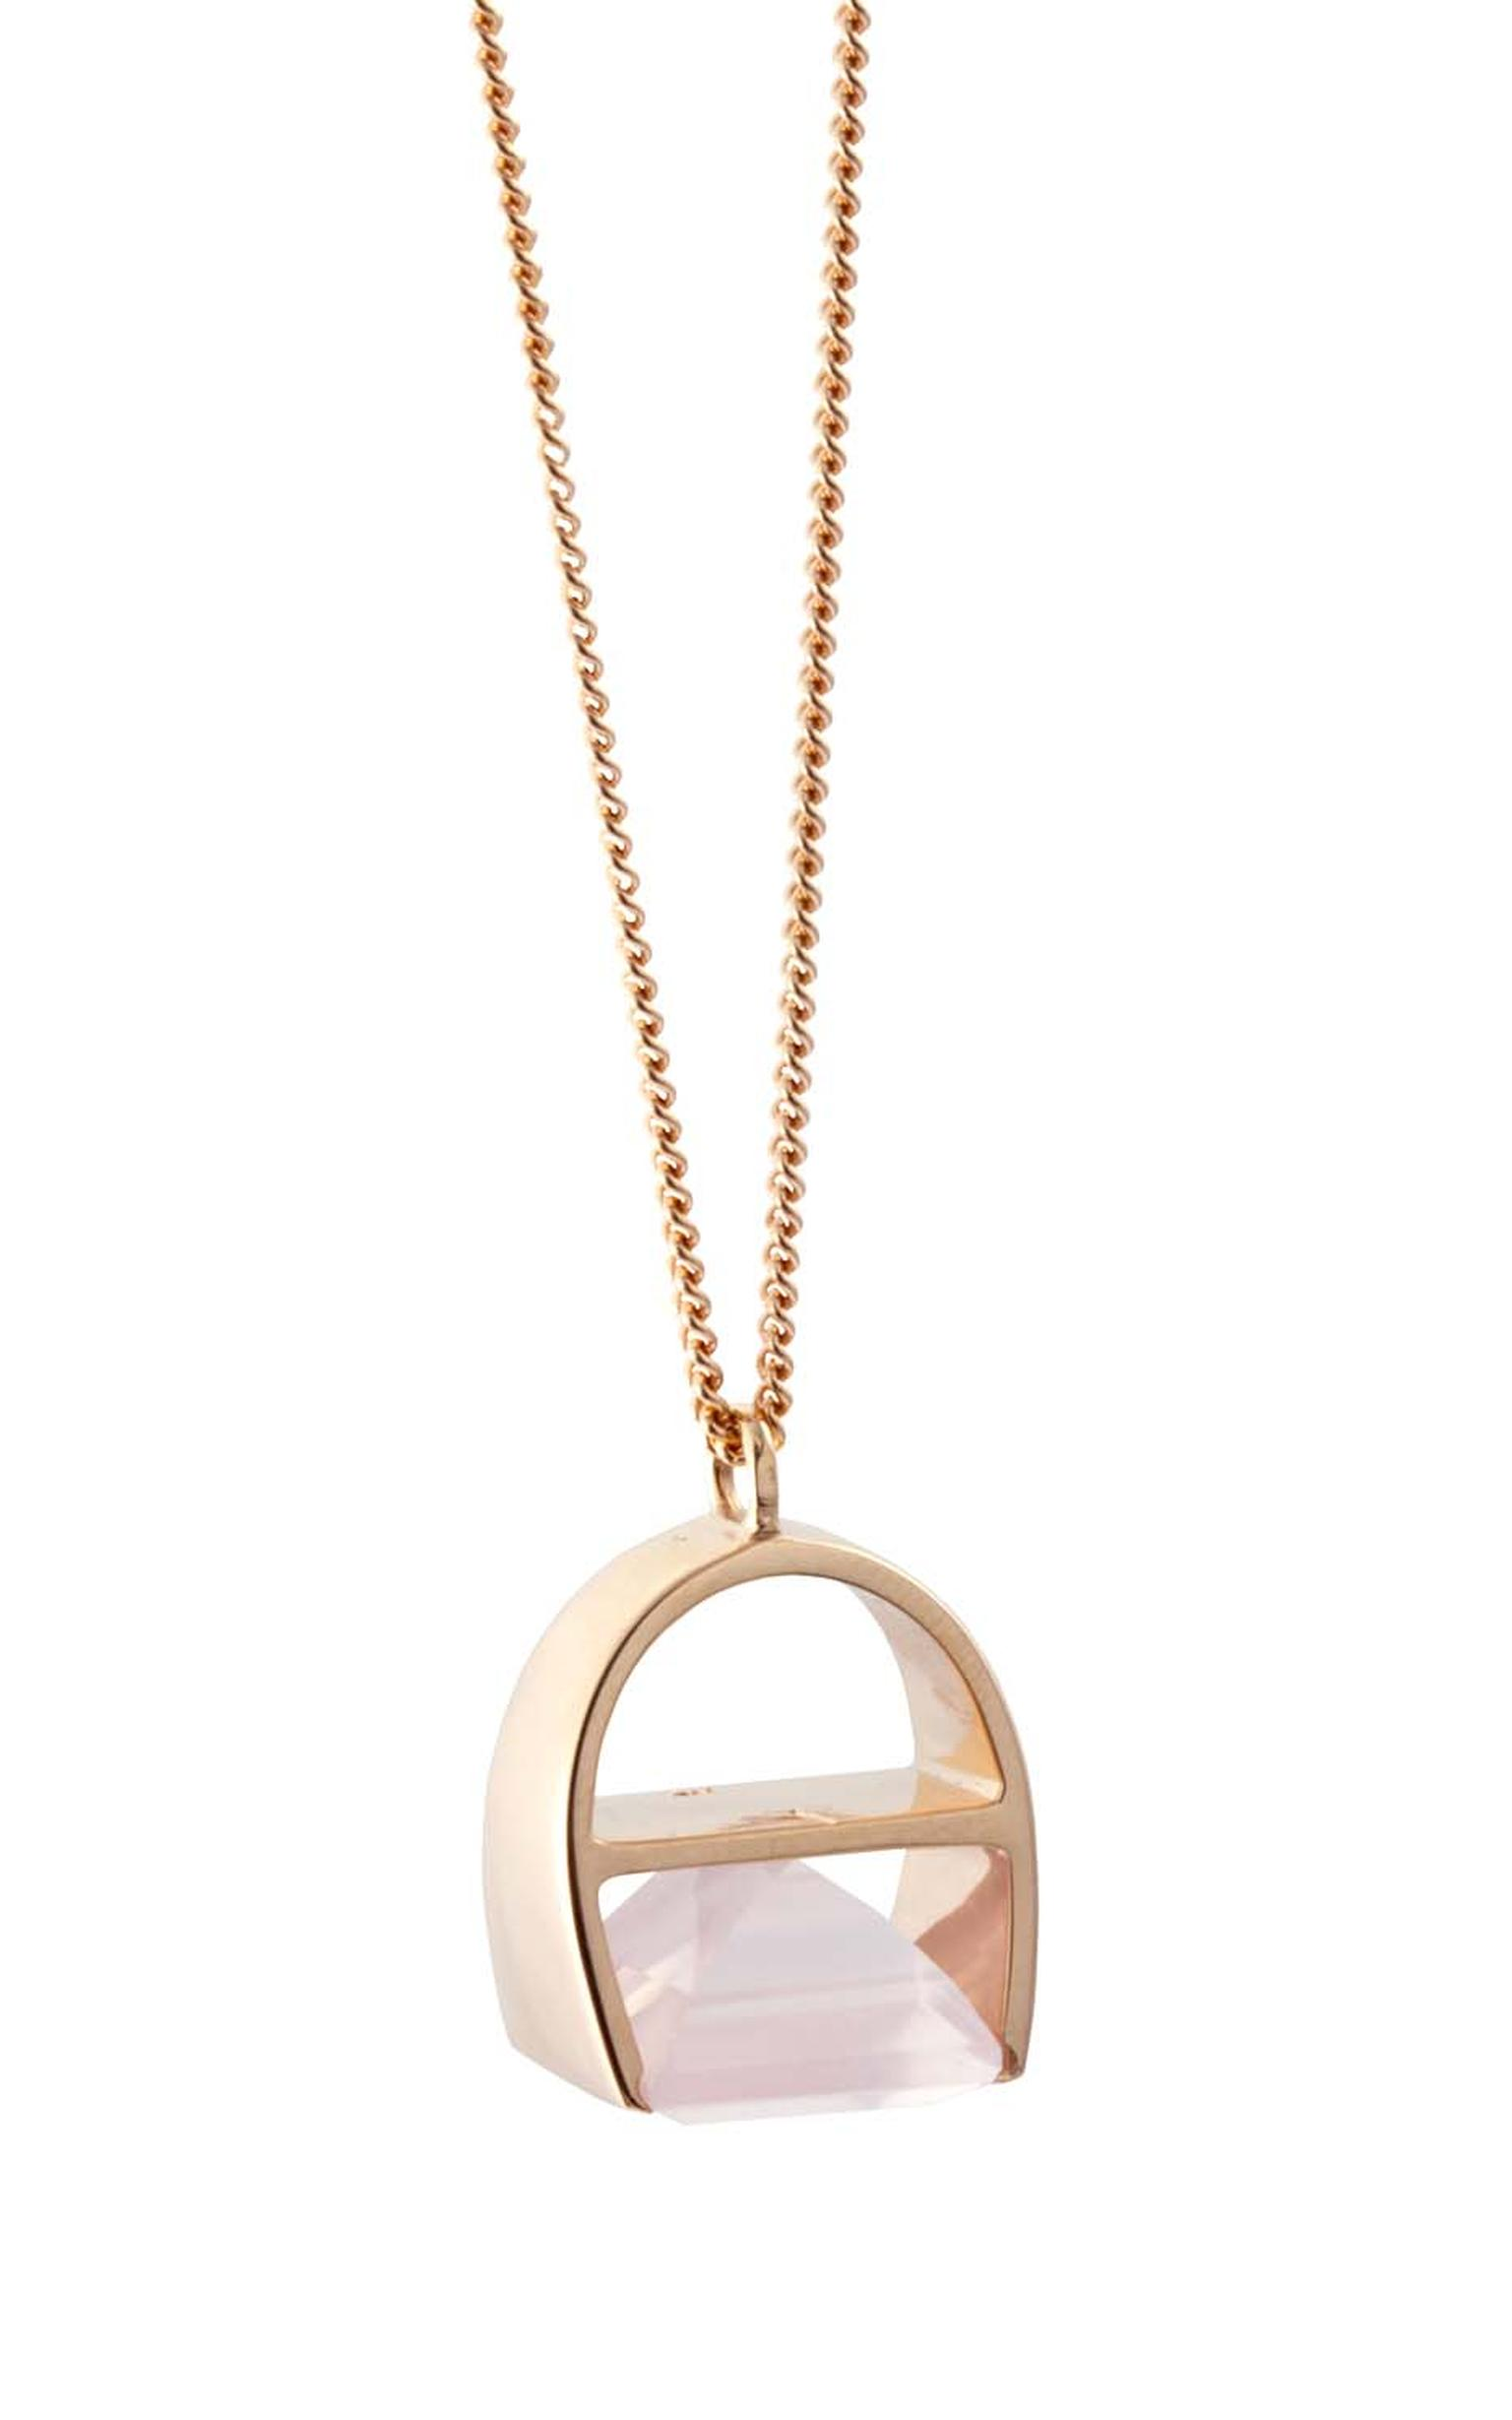 Kattri Parabola rose gold and rose quartz necklace (£3,150).